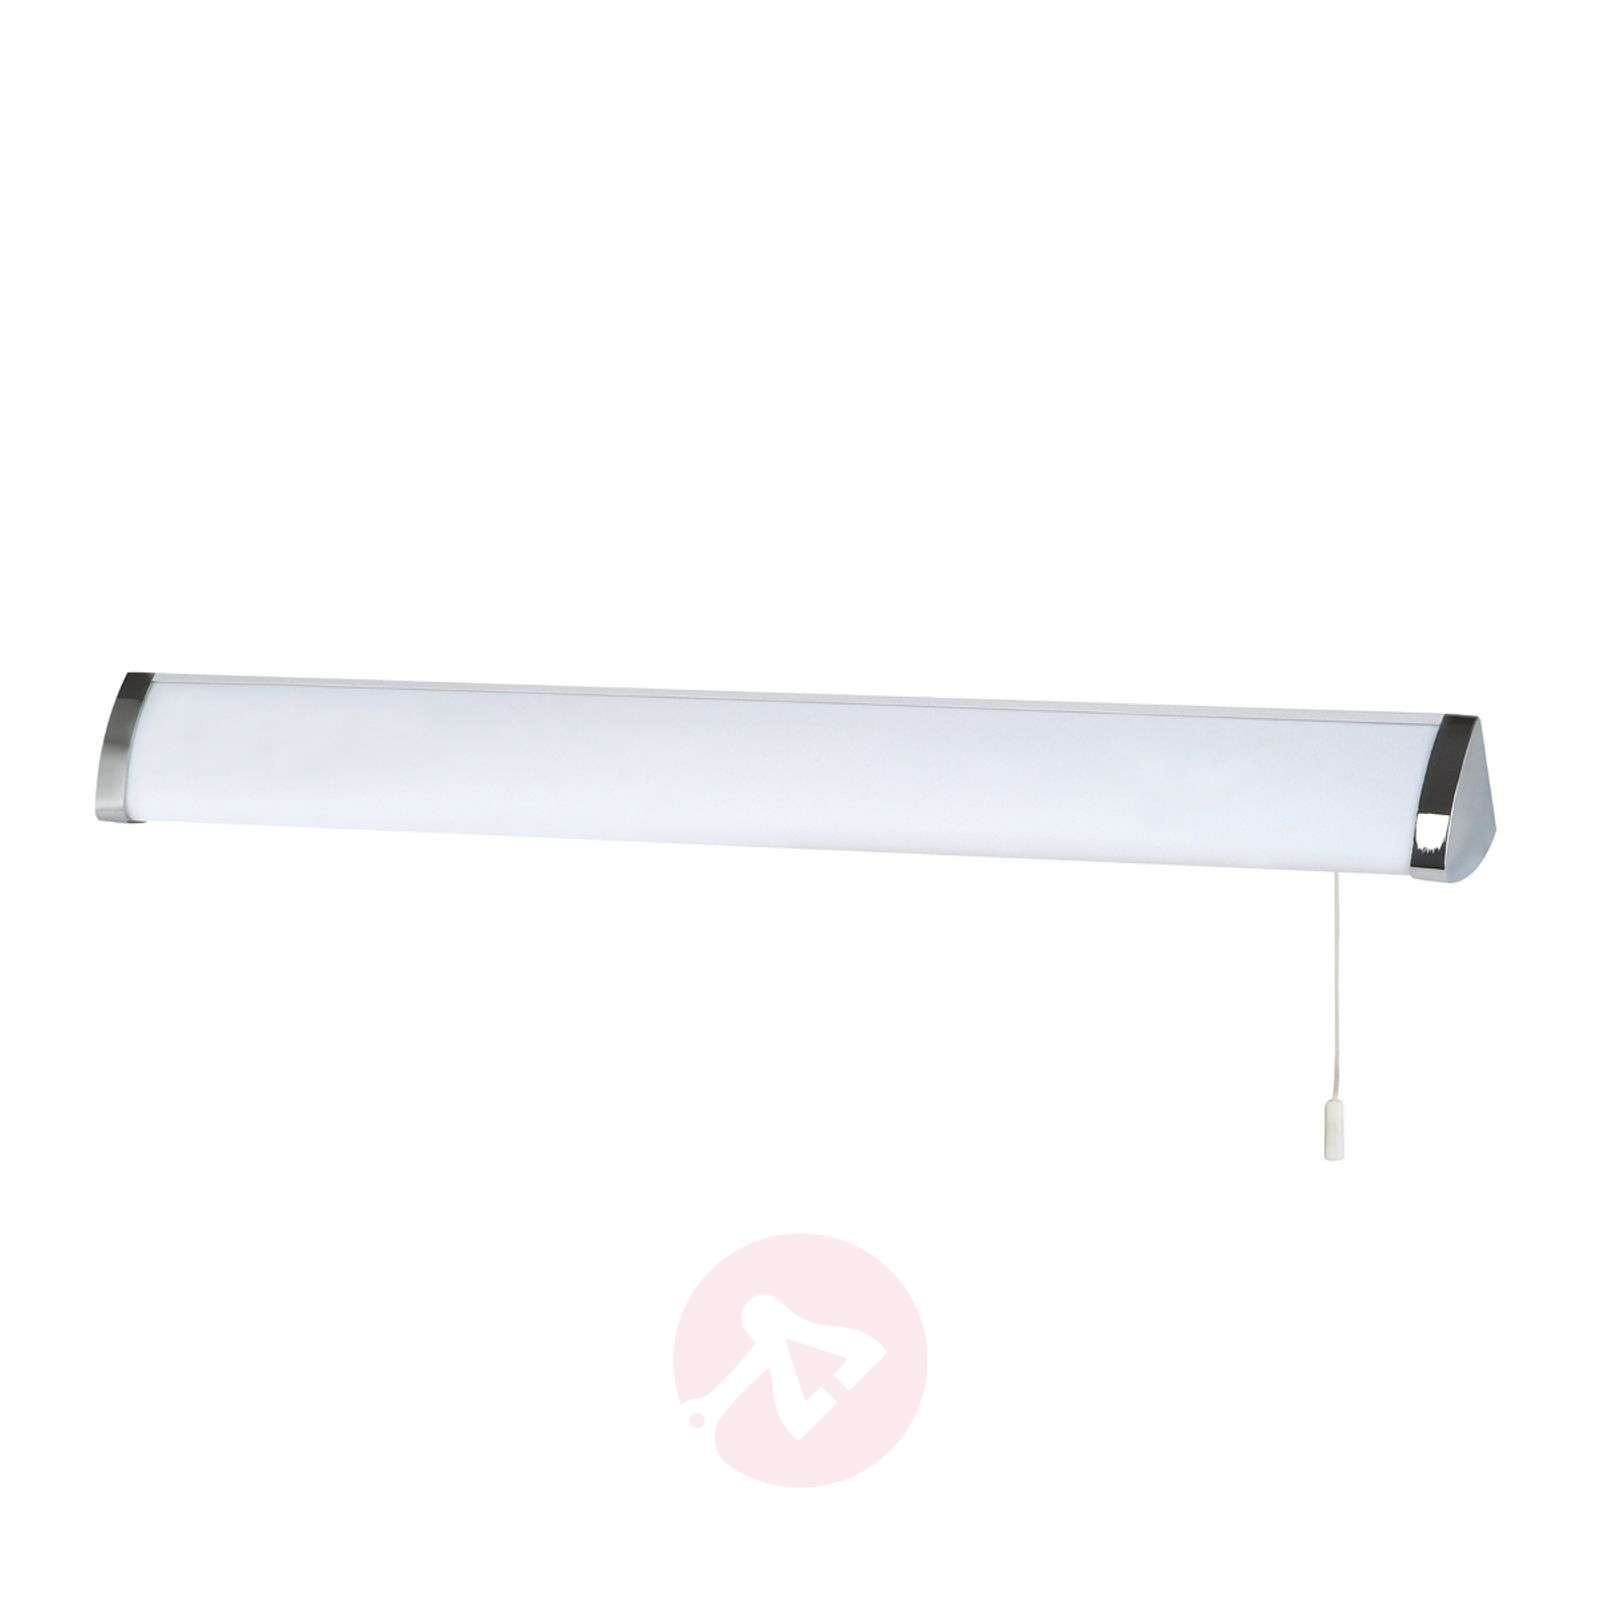 Tilda bathroom light with pull switch-8570224-02